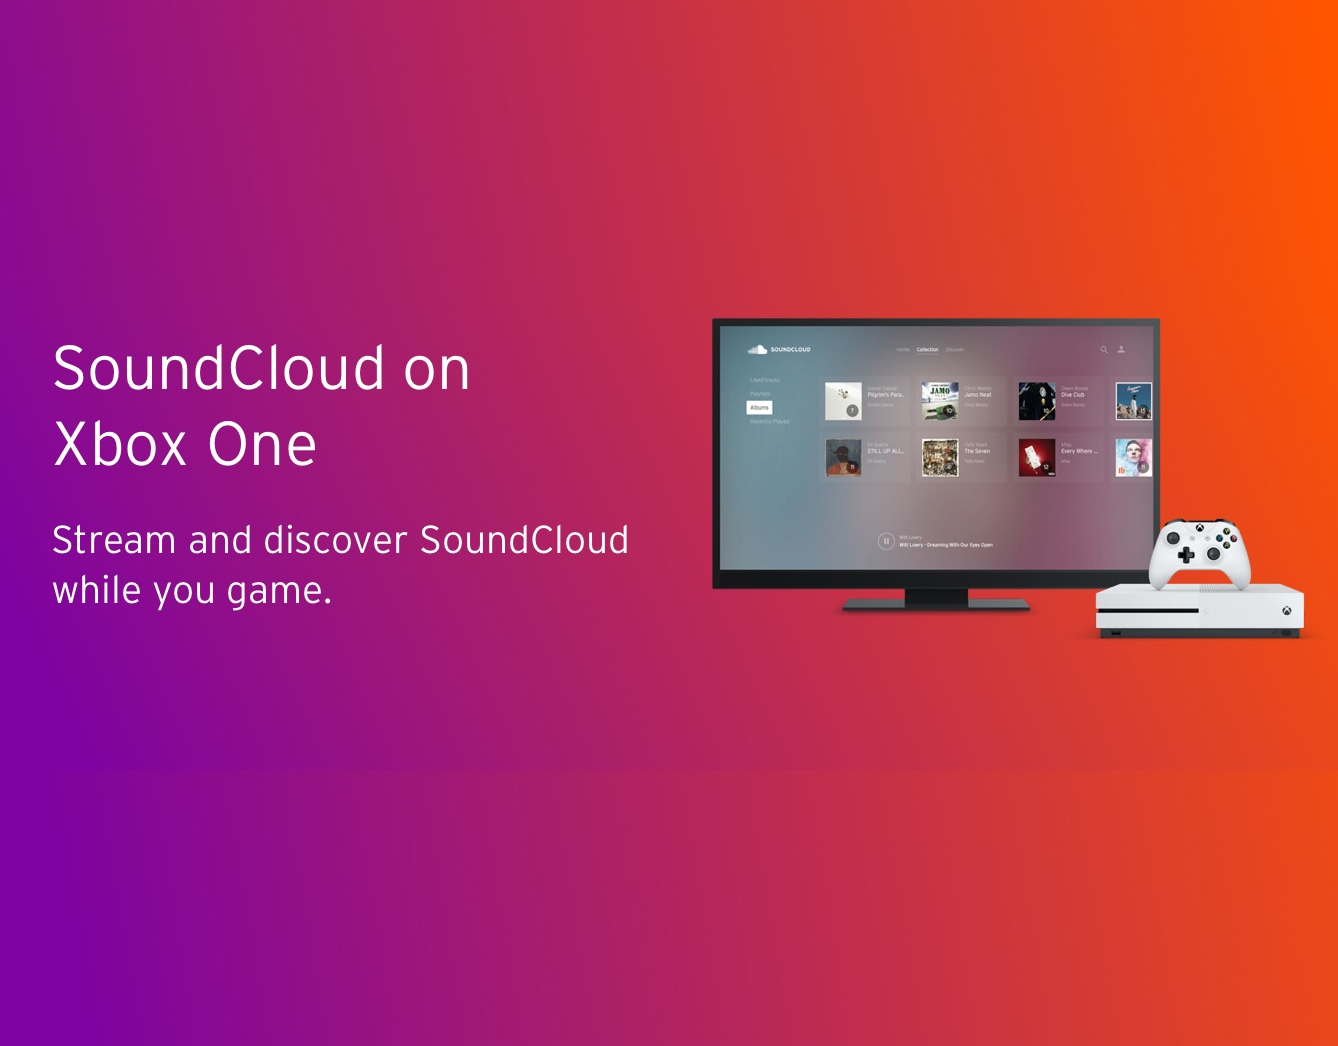 SoundCloud on Xbox